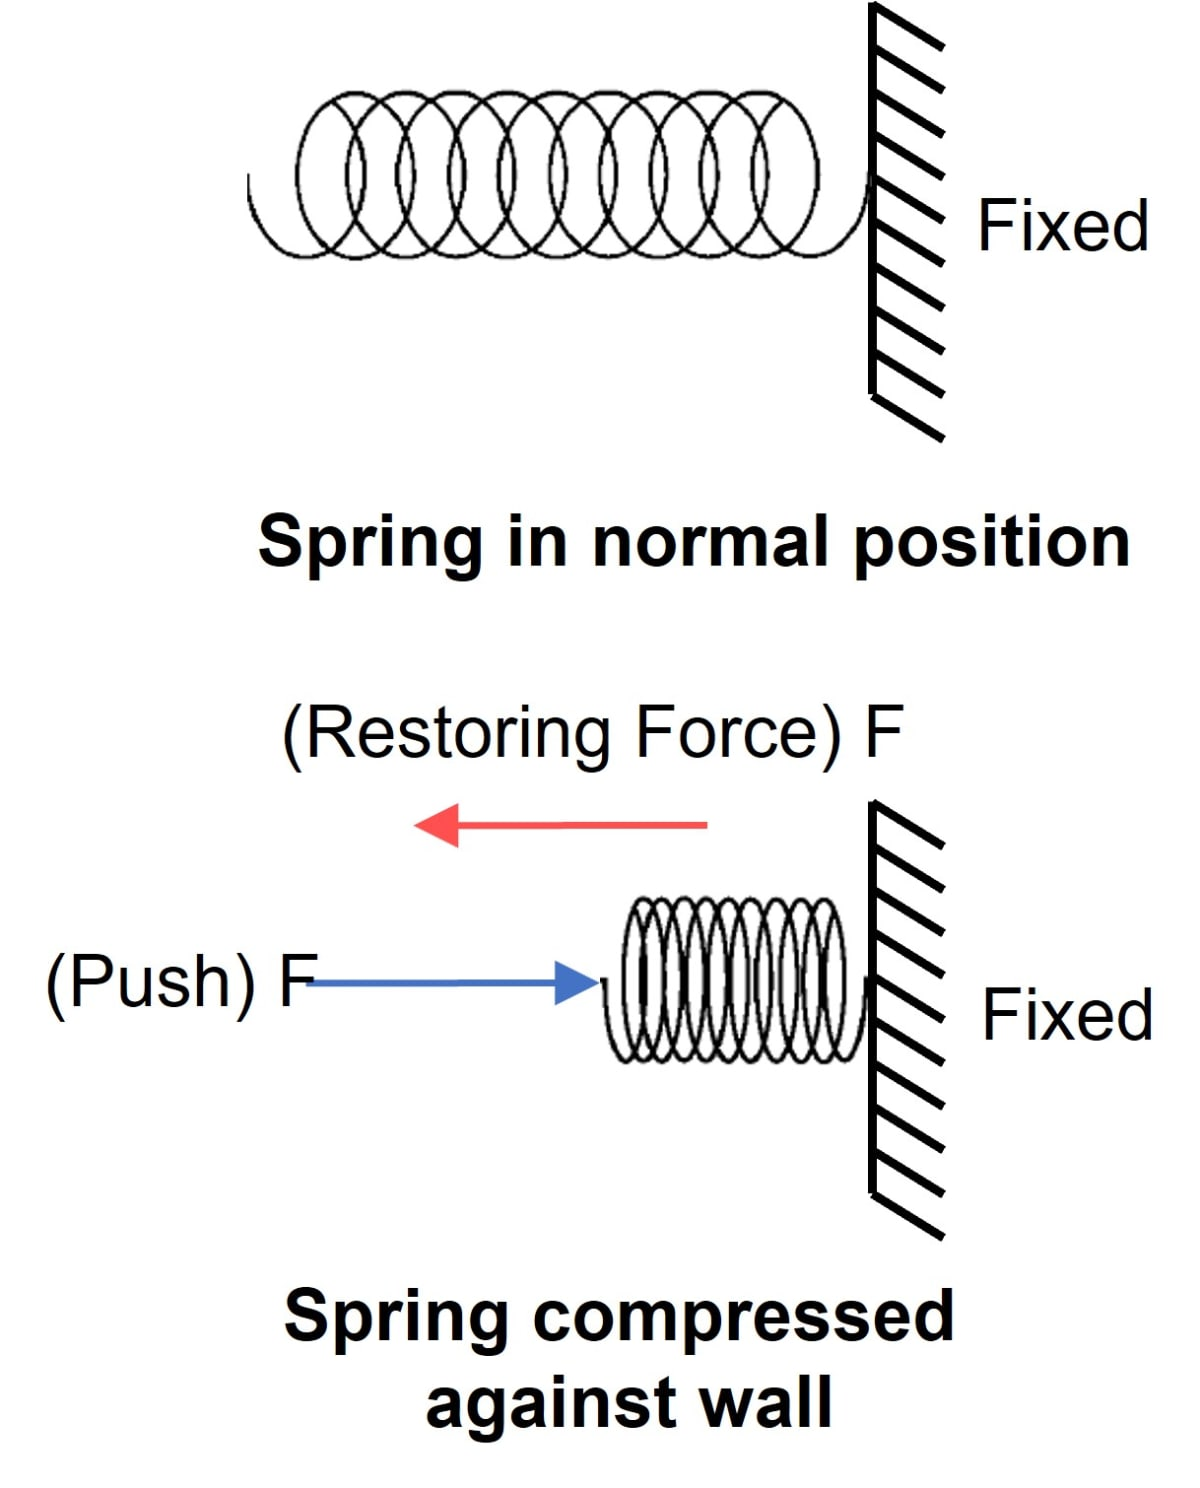 A spring is compressed against a rigid wall. Draw a neat labelled diagram showing the forces acting on the spring. Laws of Motion, Concise Physics Solutions ICSE Class 9.